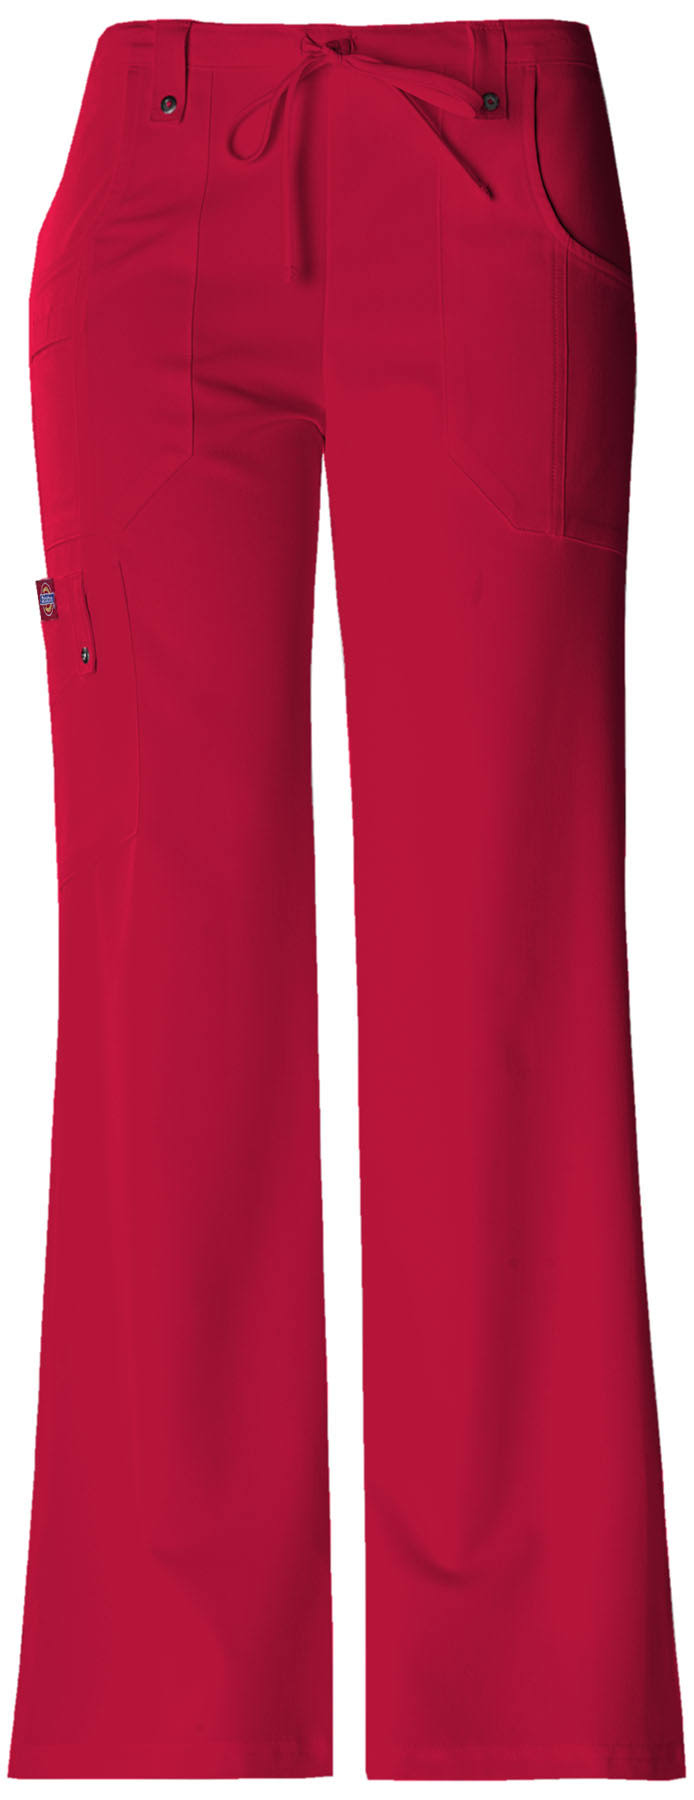 Dickies Xtreme Stretch Drawstring Flare Pants - Red, X-Large